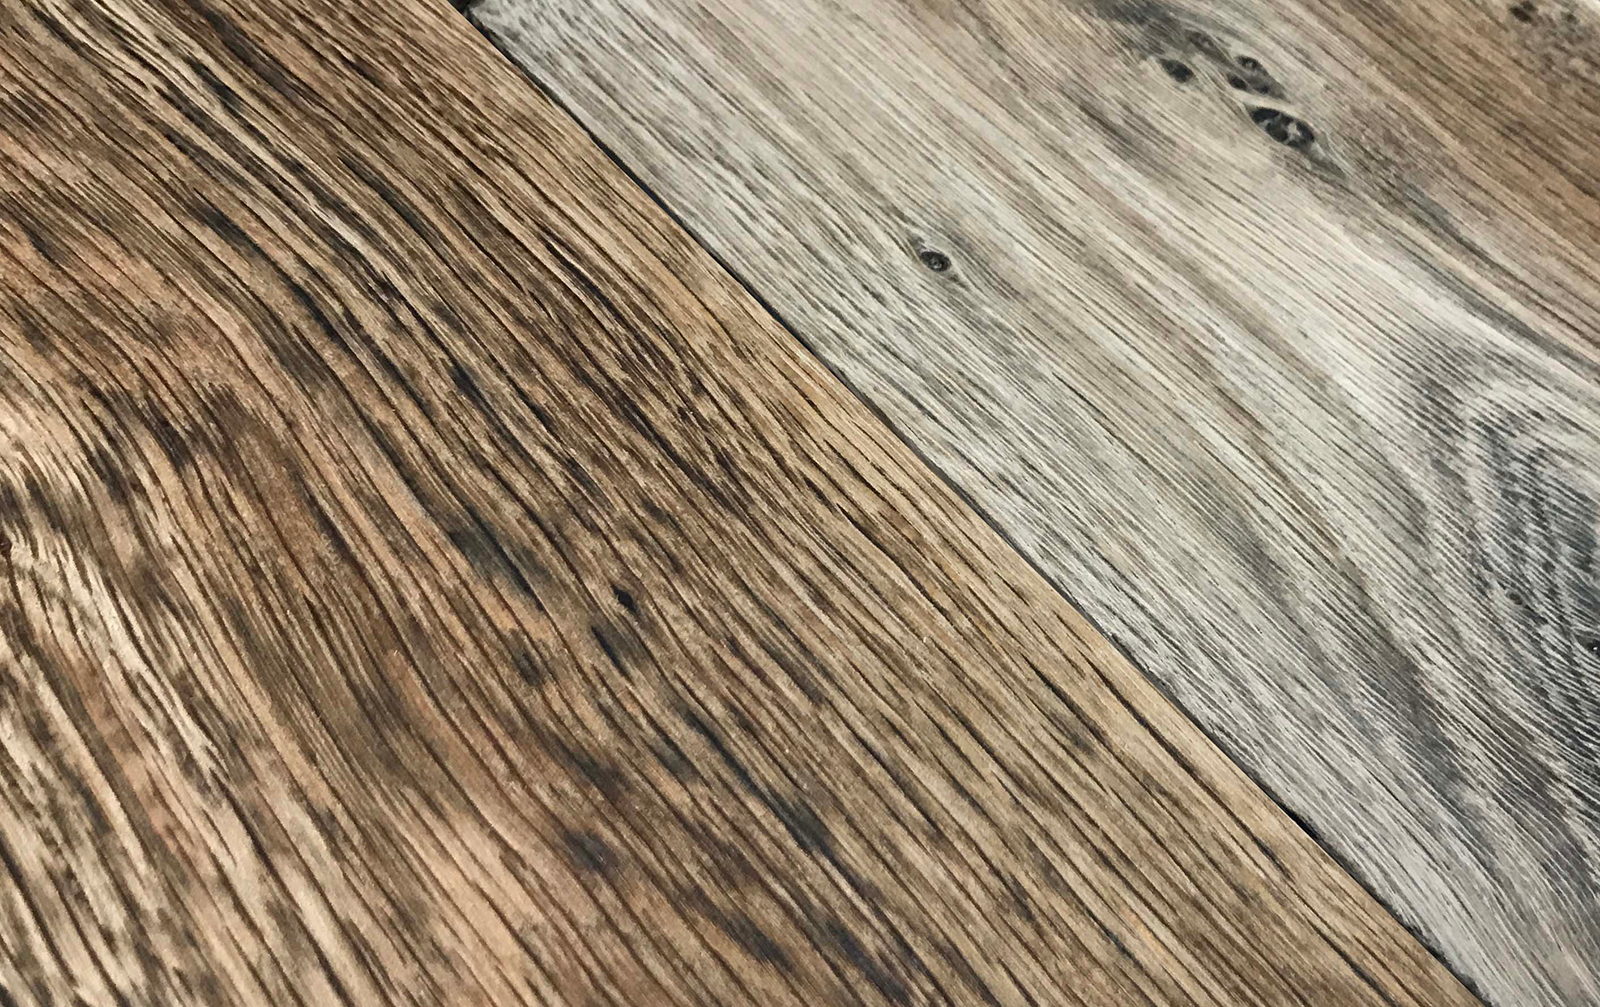 The antiquing effect (graying) of a reactive stain, midway through drying. Within a few hours, all of the boards will have this aged gray color.